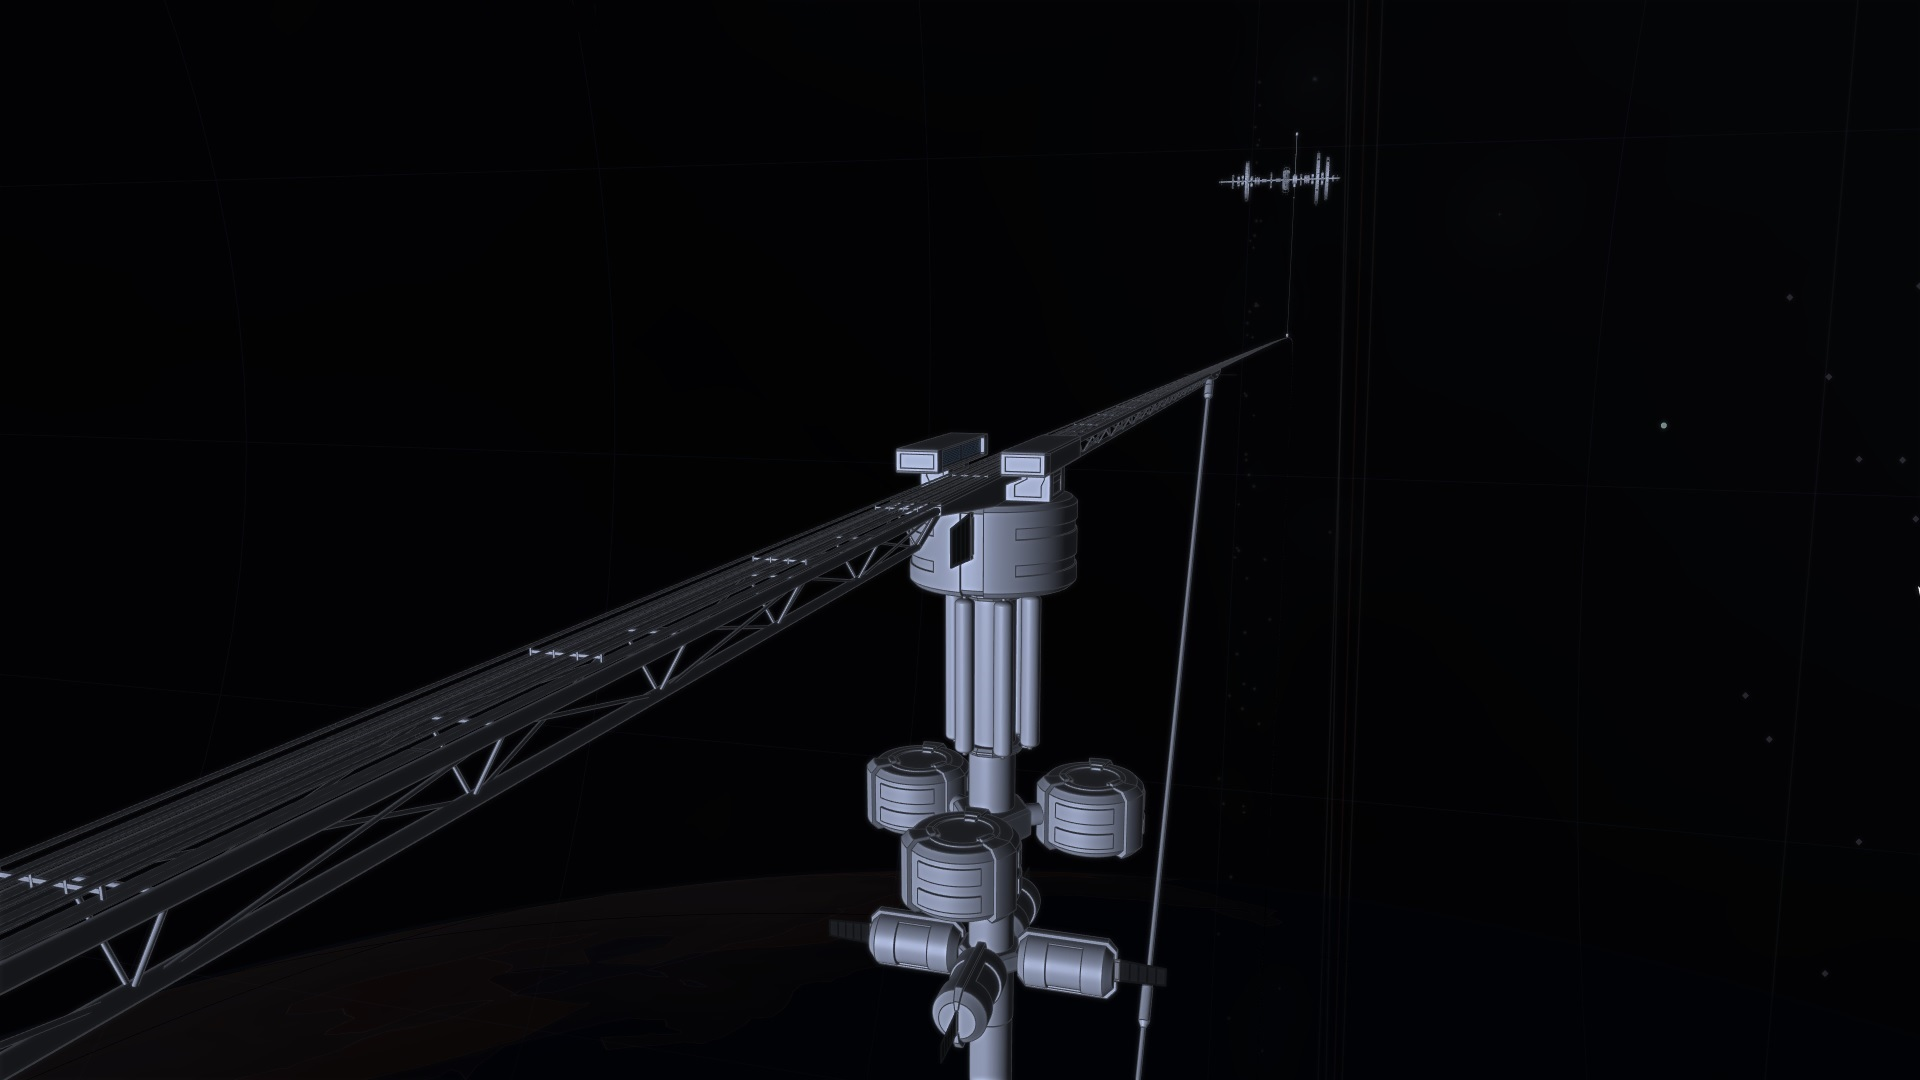 Orbital Ring Station in approach